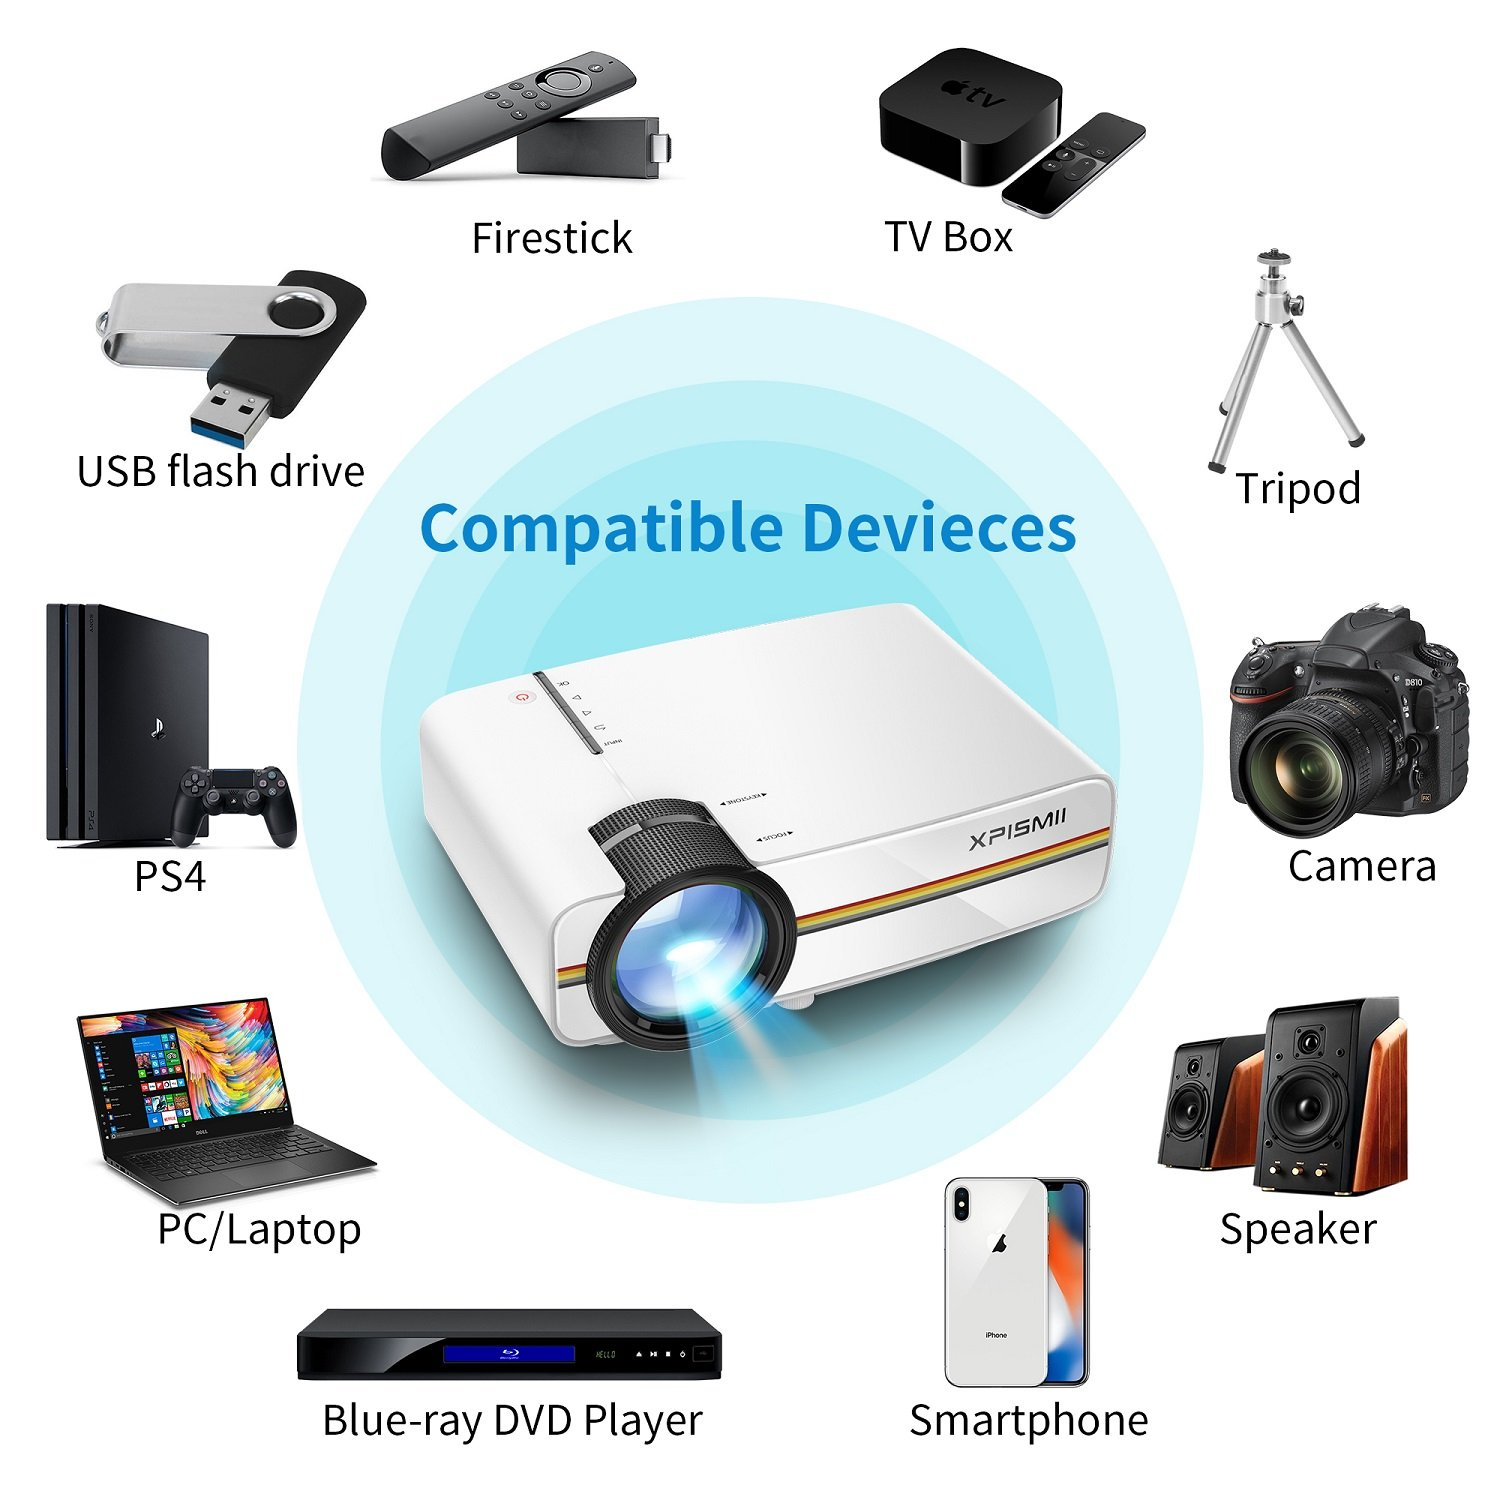 XPISMII D60 LED Mini Projector, Portable Multimedia Home Theater HD LCD Movie Video Projector Support 1080P HDMI USB VGA AV Home Cinema TV Game Computer iPhone/Ipad Android Smartphone with HDMI Cable by XPISMII (Image #5)